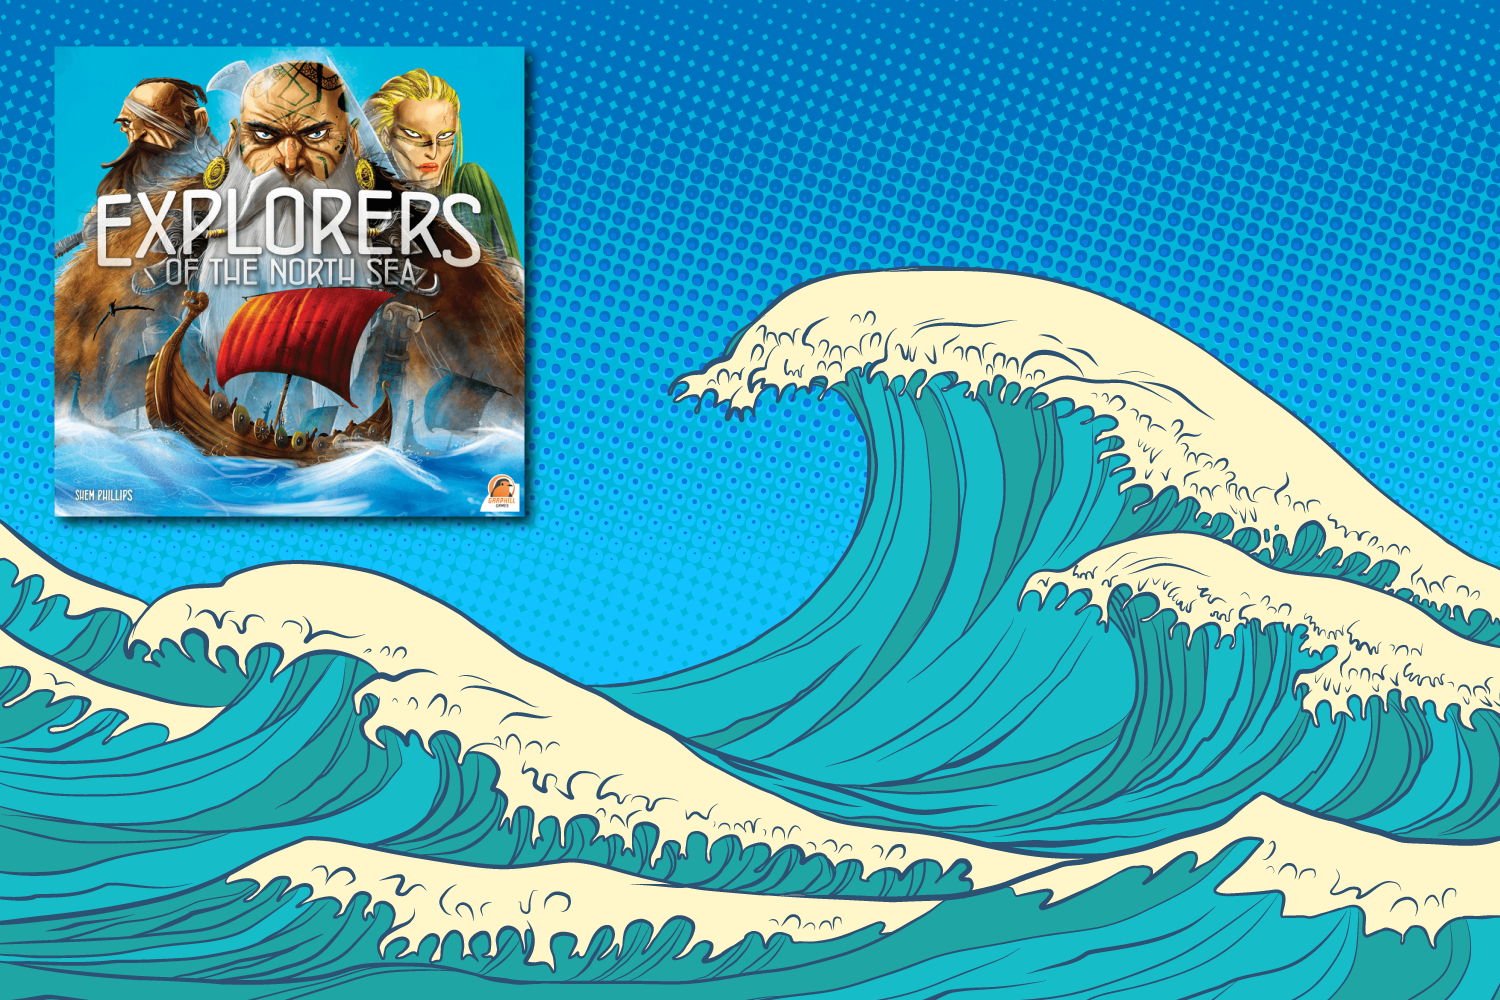 Explorers-of-the-North-Sea-Review-Header-Image